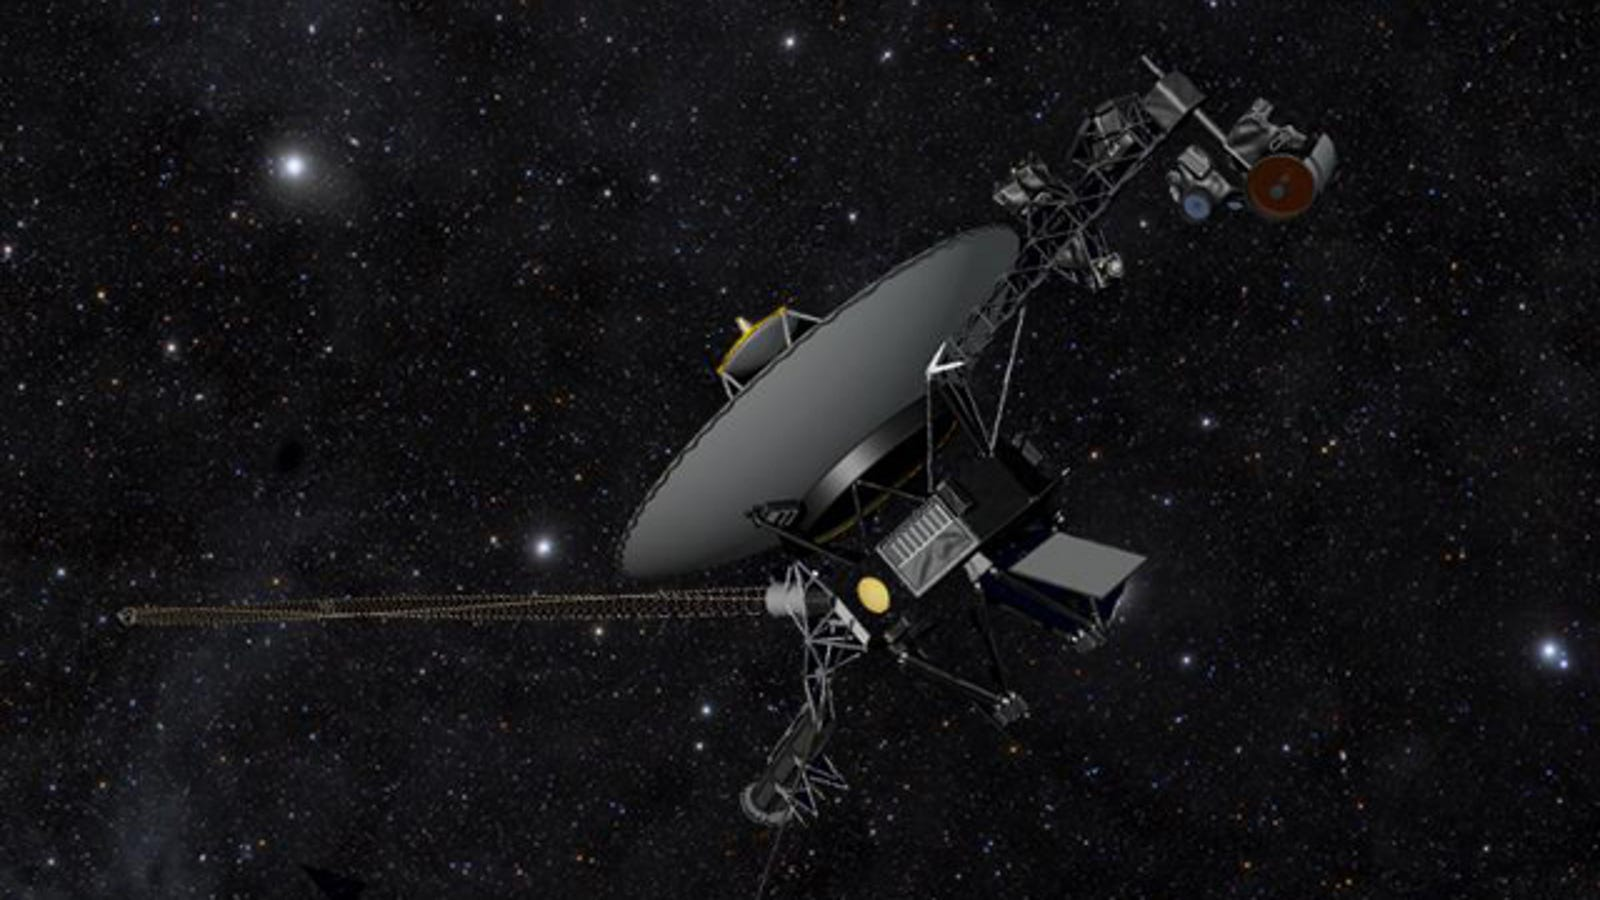 So apparently Voyager 1 left our solar system on July 27, 2012